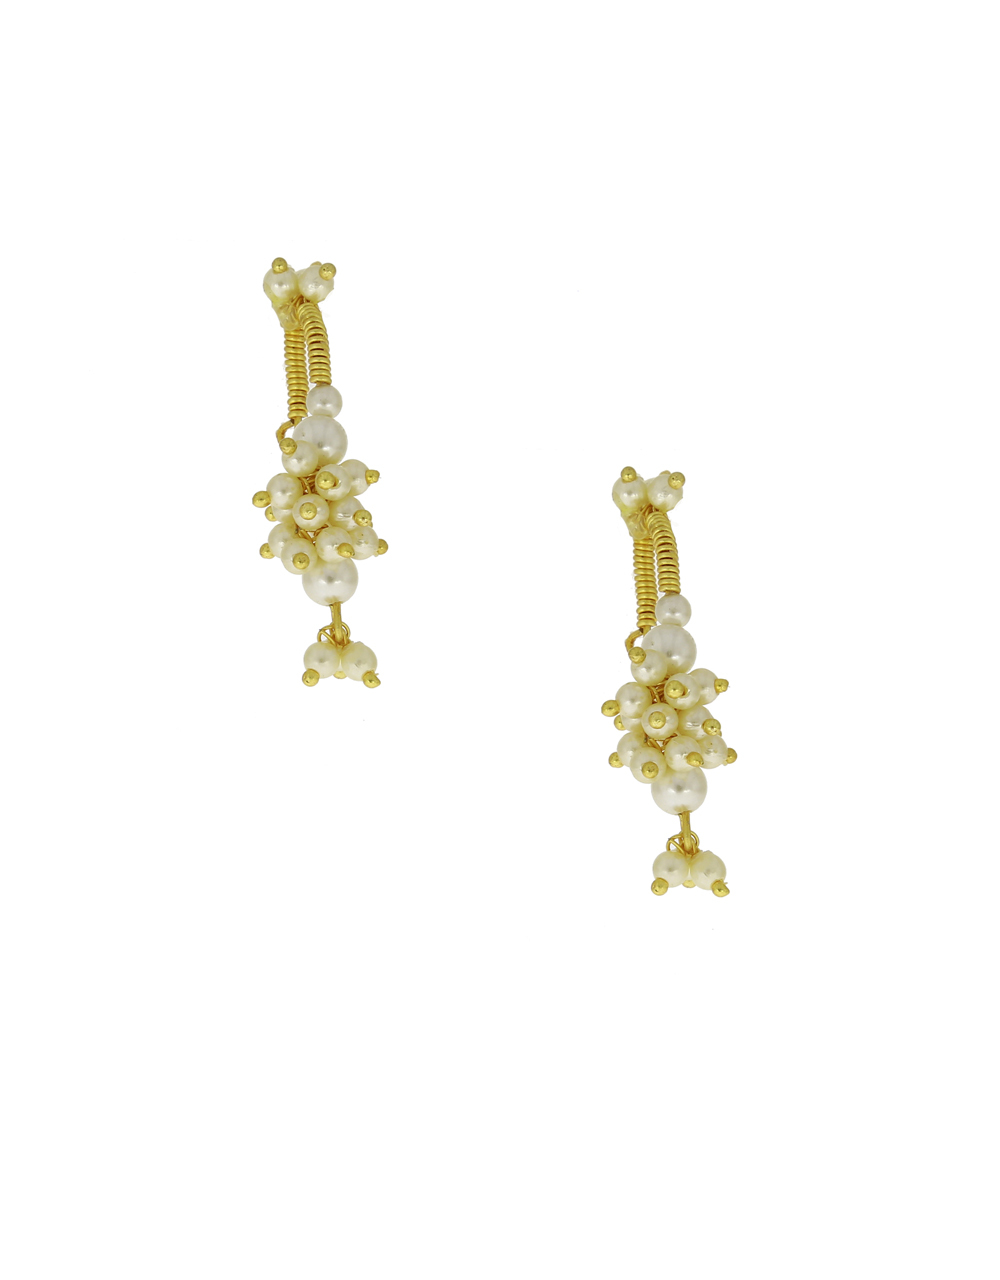 Off-White Colour Pearls Beads Bugadi Earrings For Traditional Look {Clip-On Bugadi}